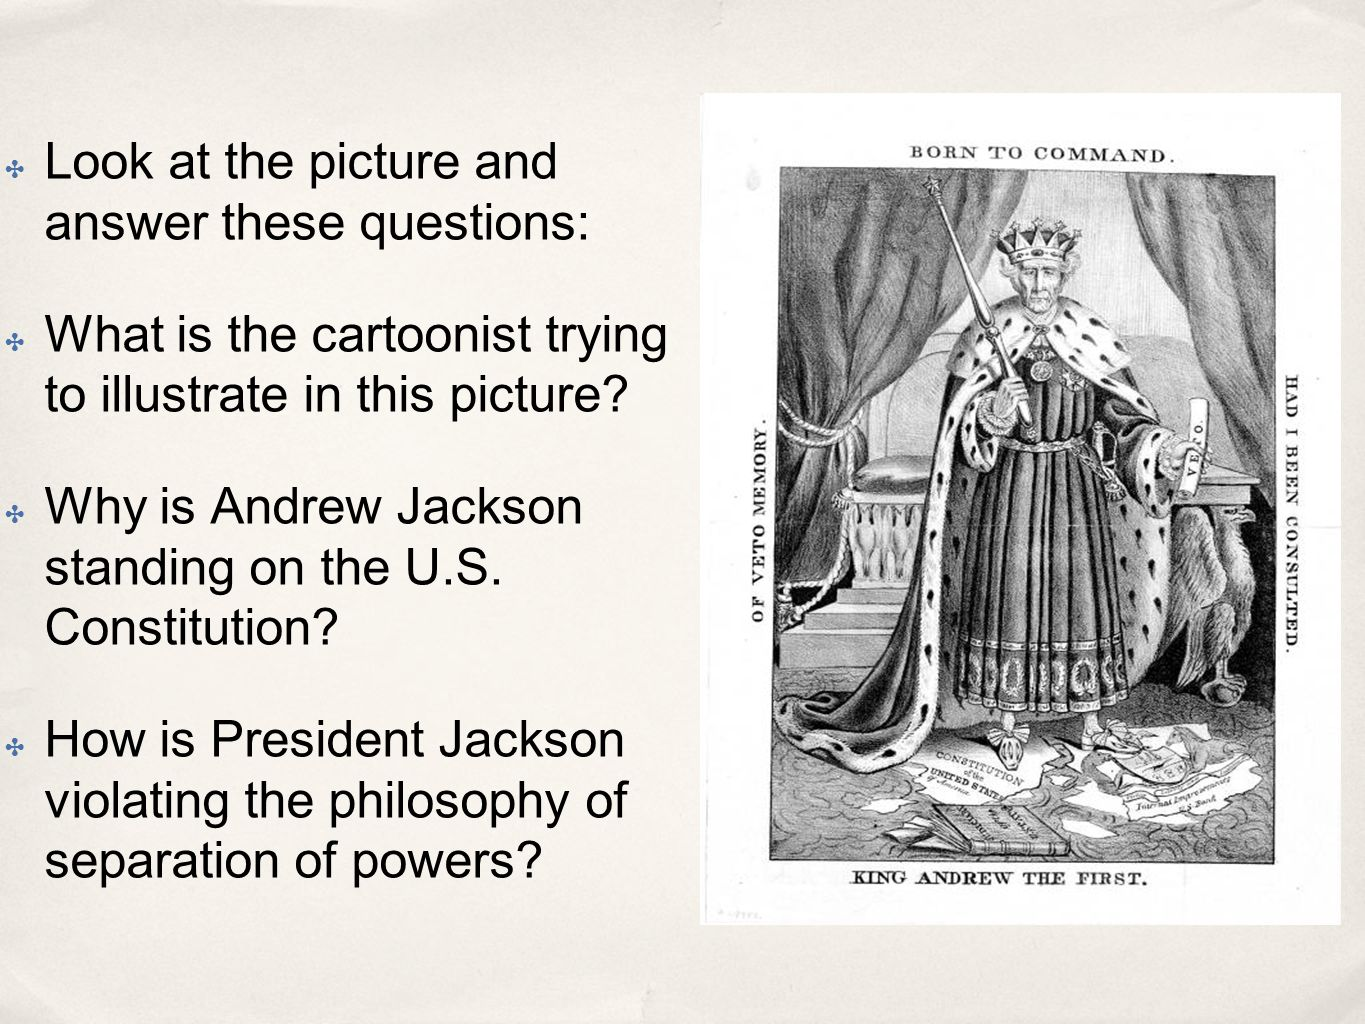 a description of andrew jackson who violated his oath as president Best answer: jackson advocated one of the harshest indian policies of any american leader he fought indians during the war of 1812 and creek wars and the seminole war in florida then, as president, he engineered the trail of tears he was almost equally harsh to african americans.